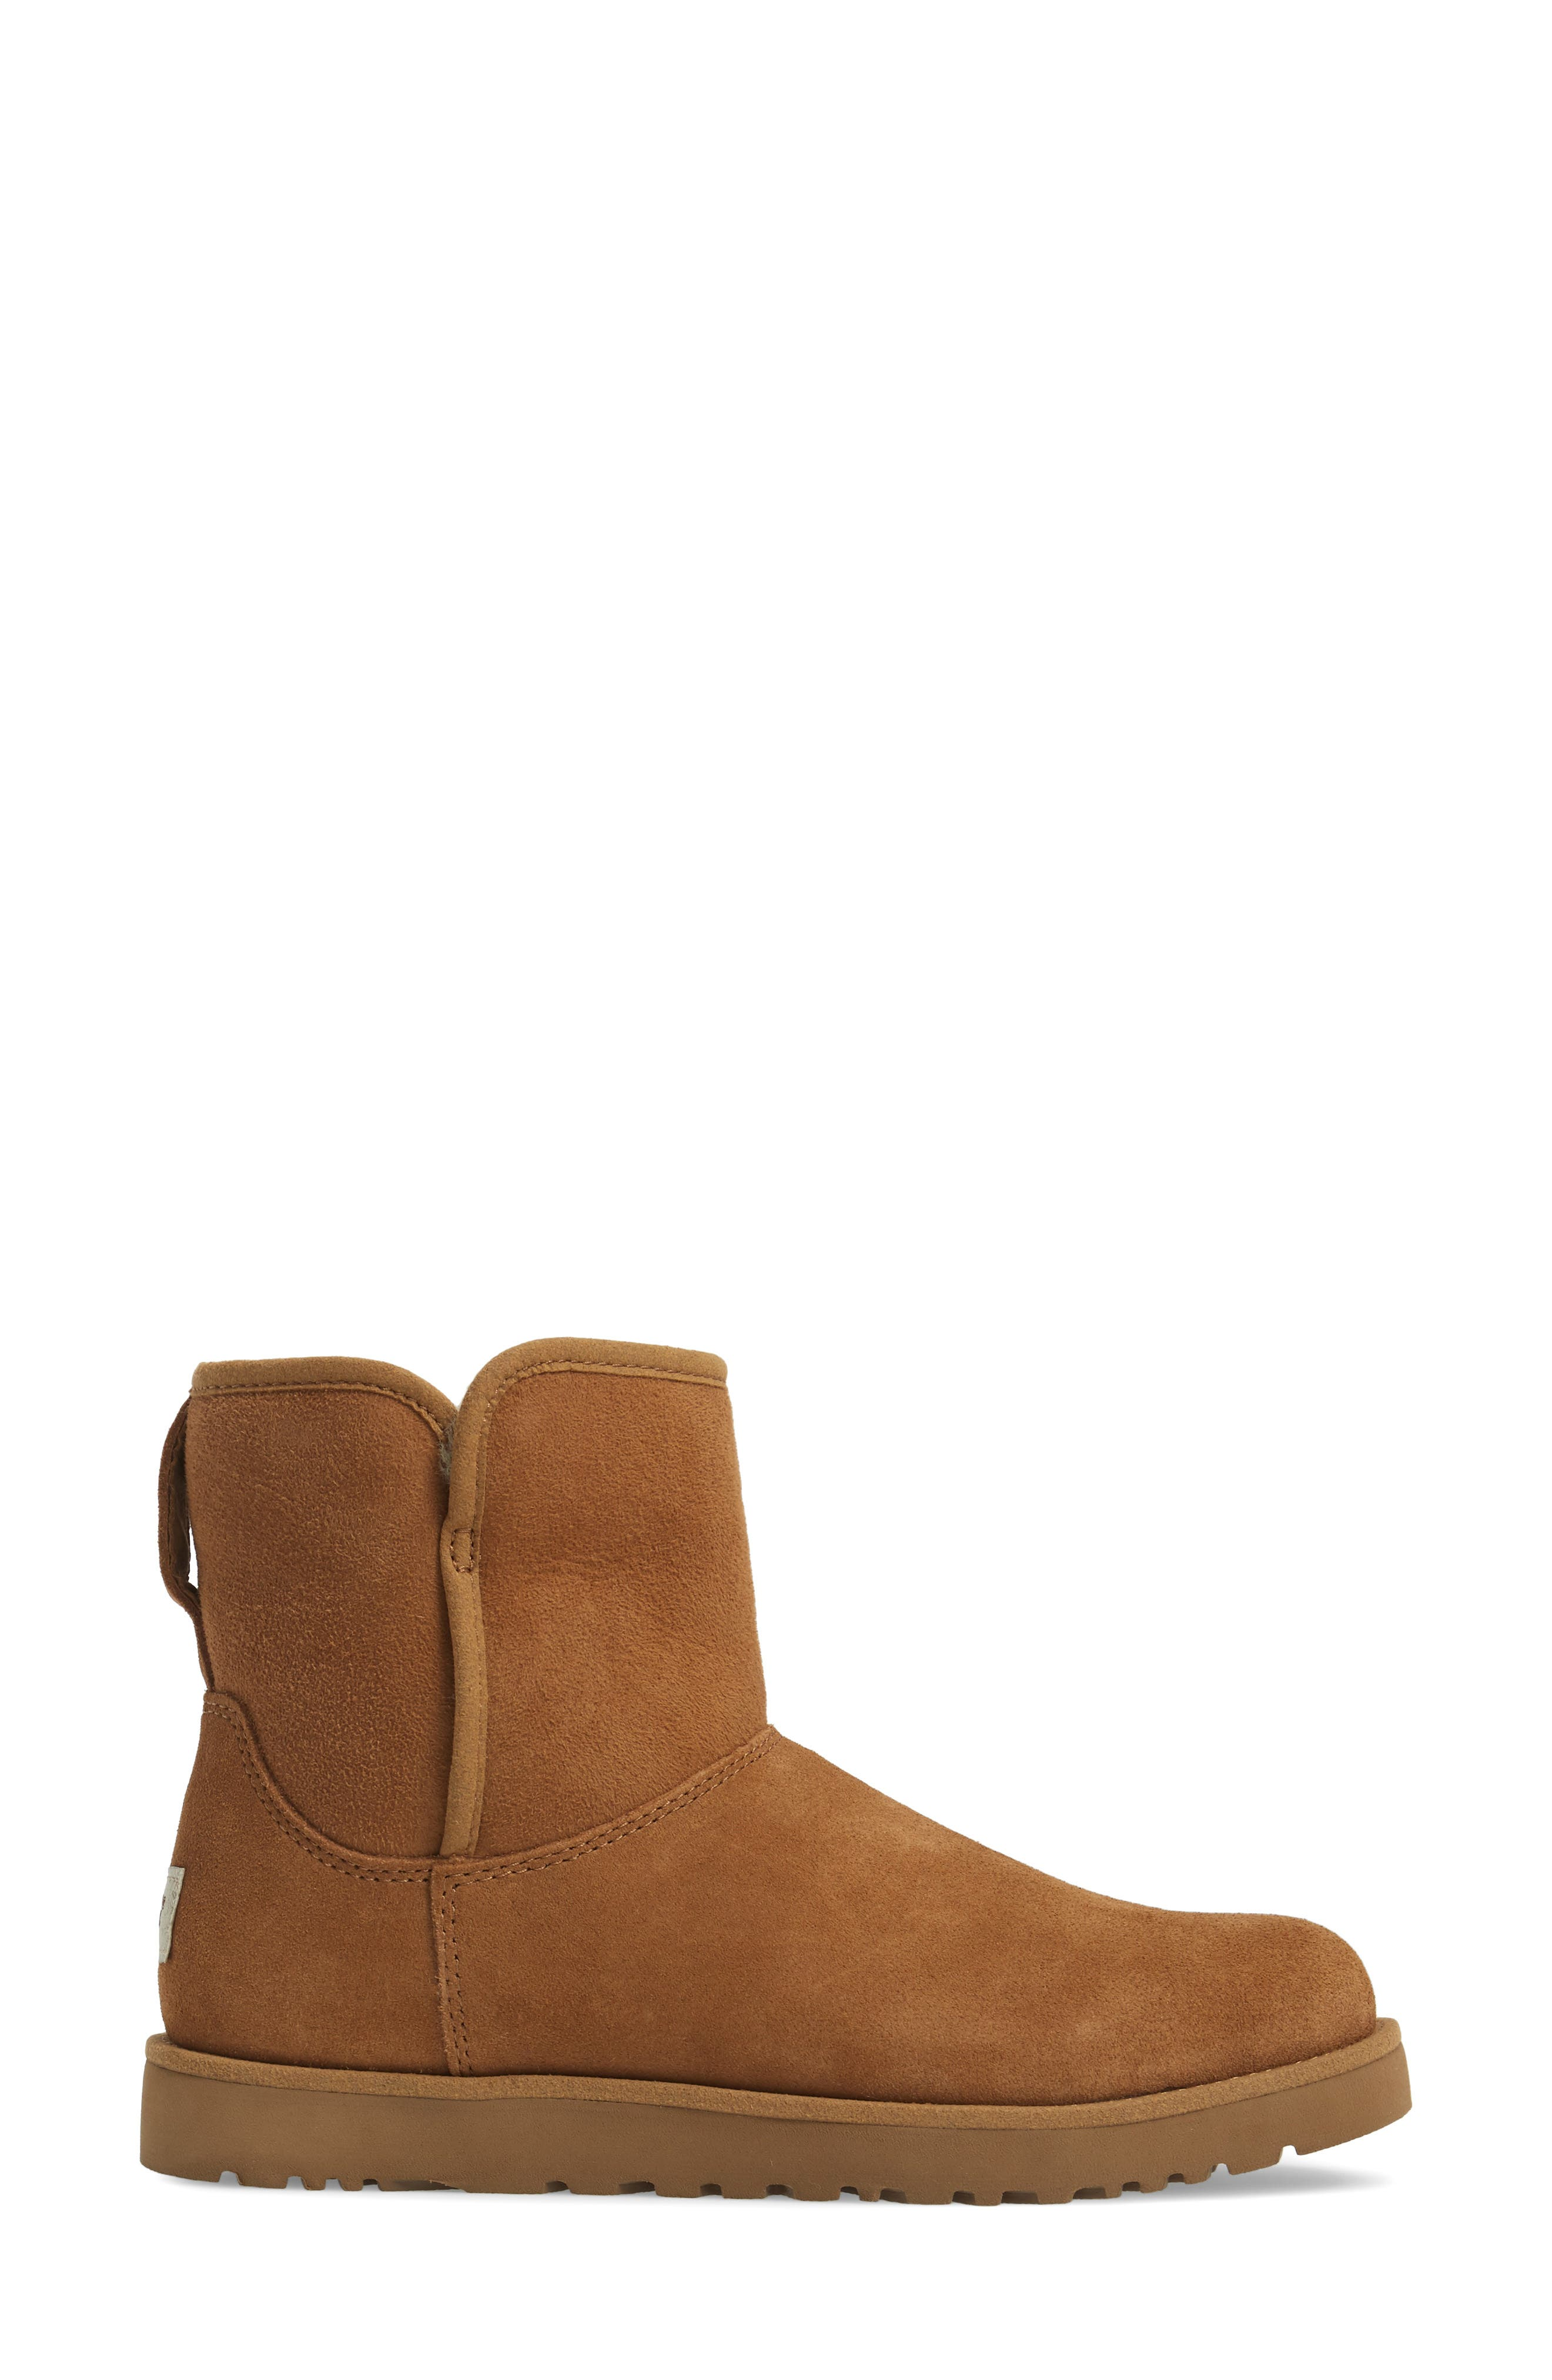 'Cory' Short Boot,                             Alternate thumbnail 3, color,                             Chestnut Suede